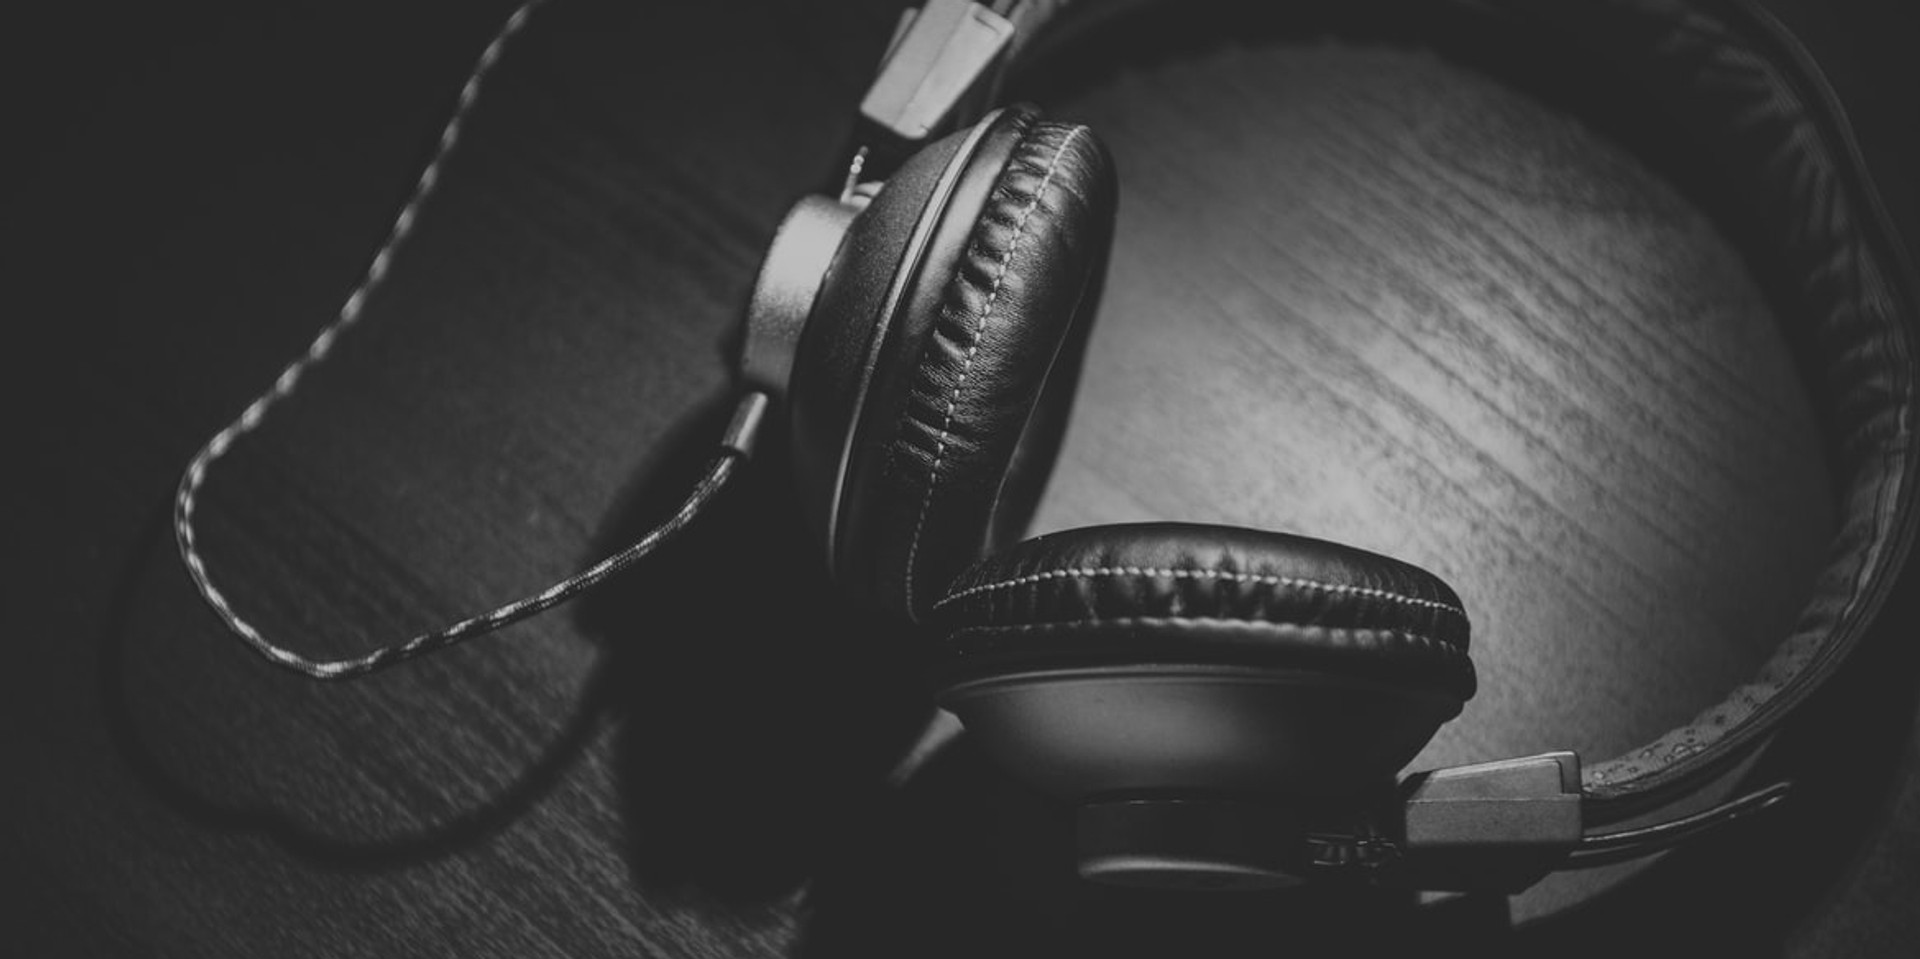 New study reveals that music is infectious